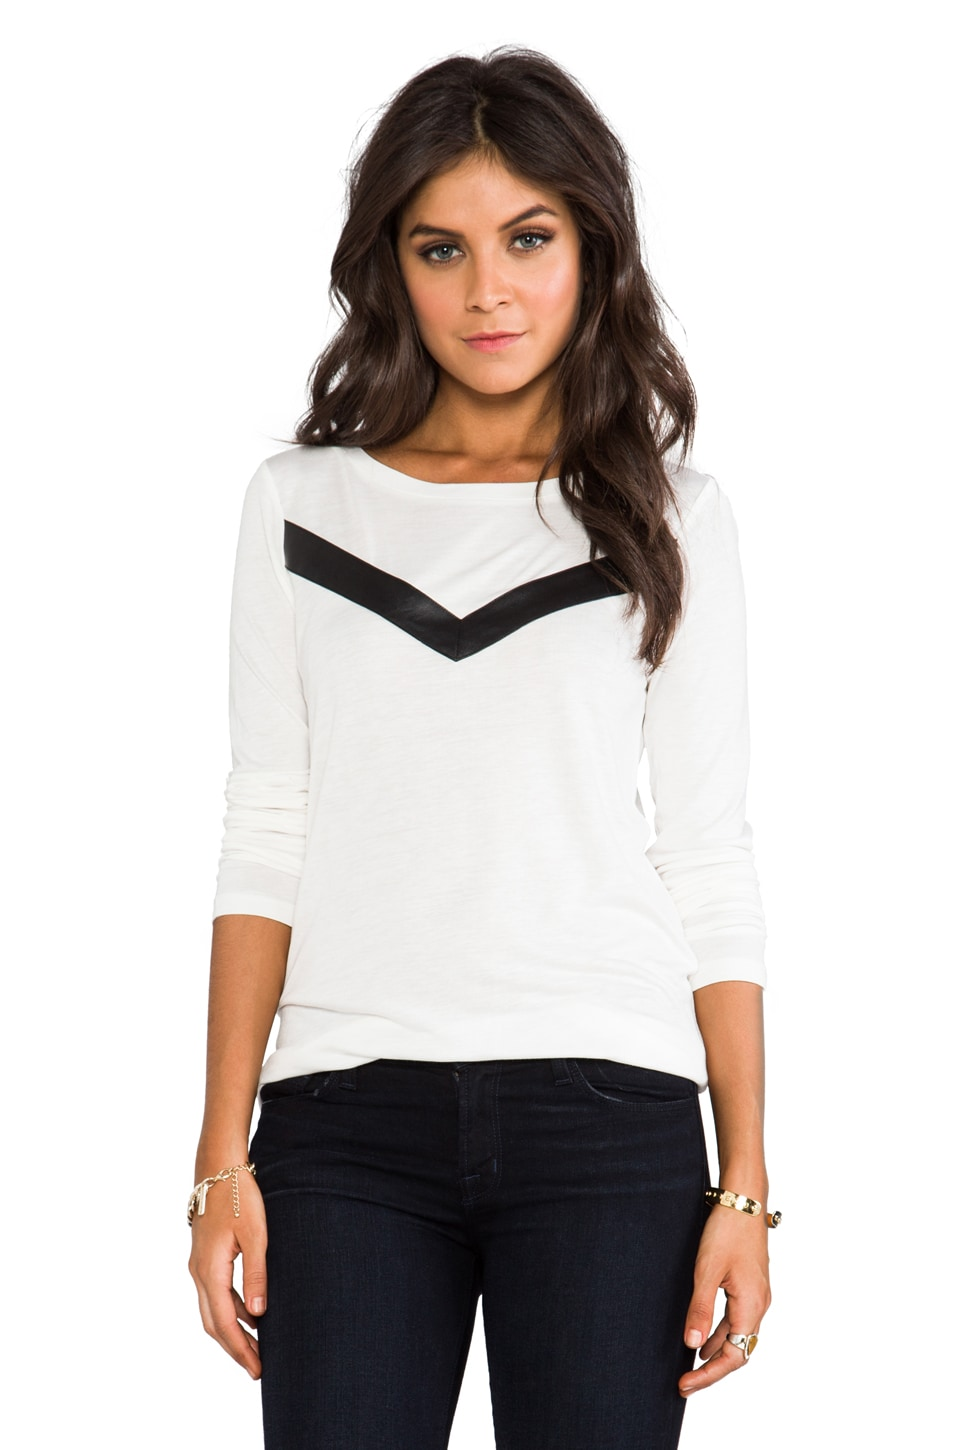 BB Dakota Deborah Long Sleeve Top w/ Faux Leather Insert in Dirty White